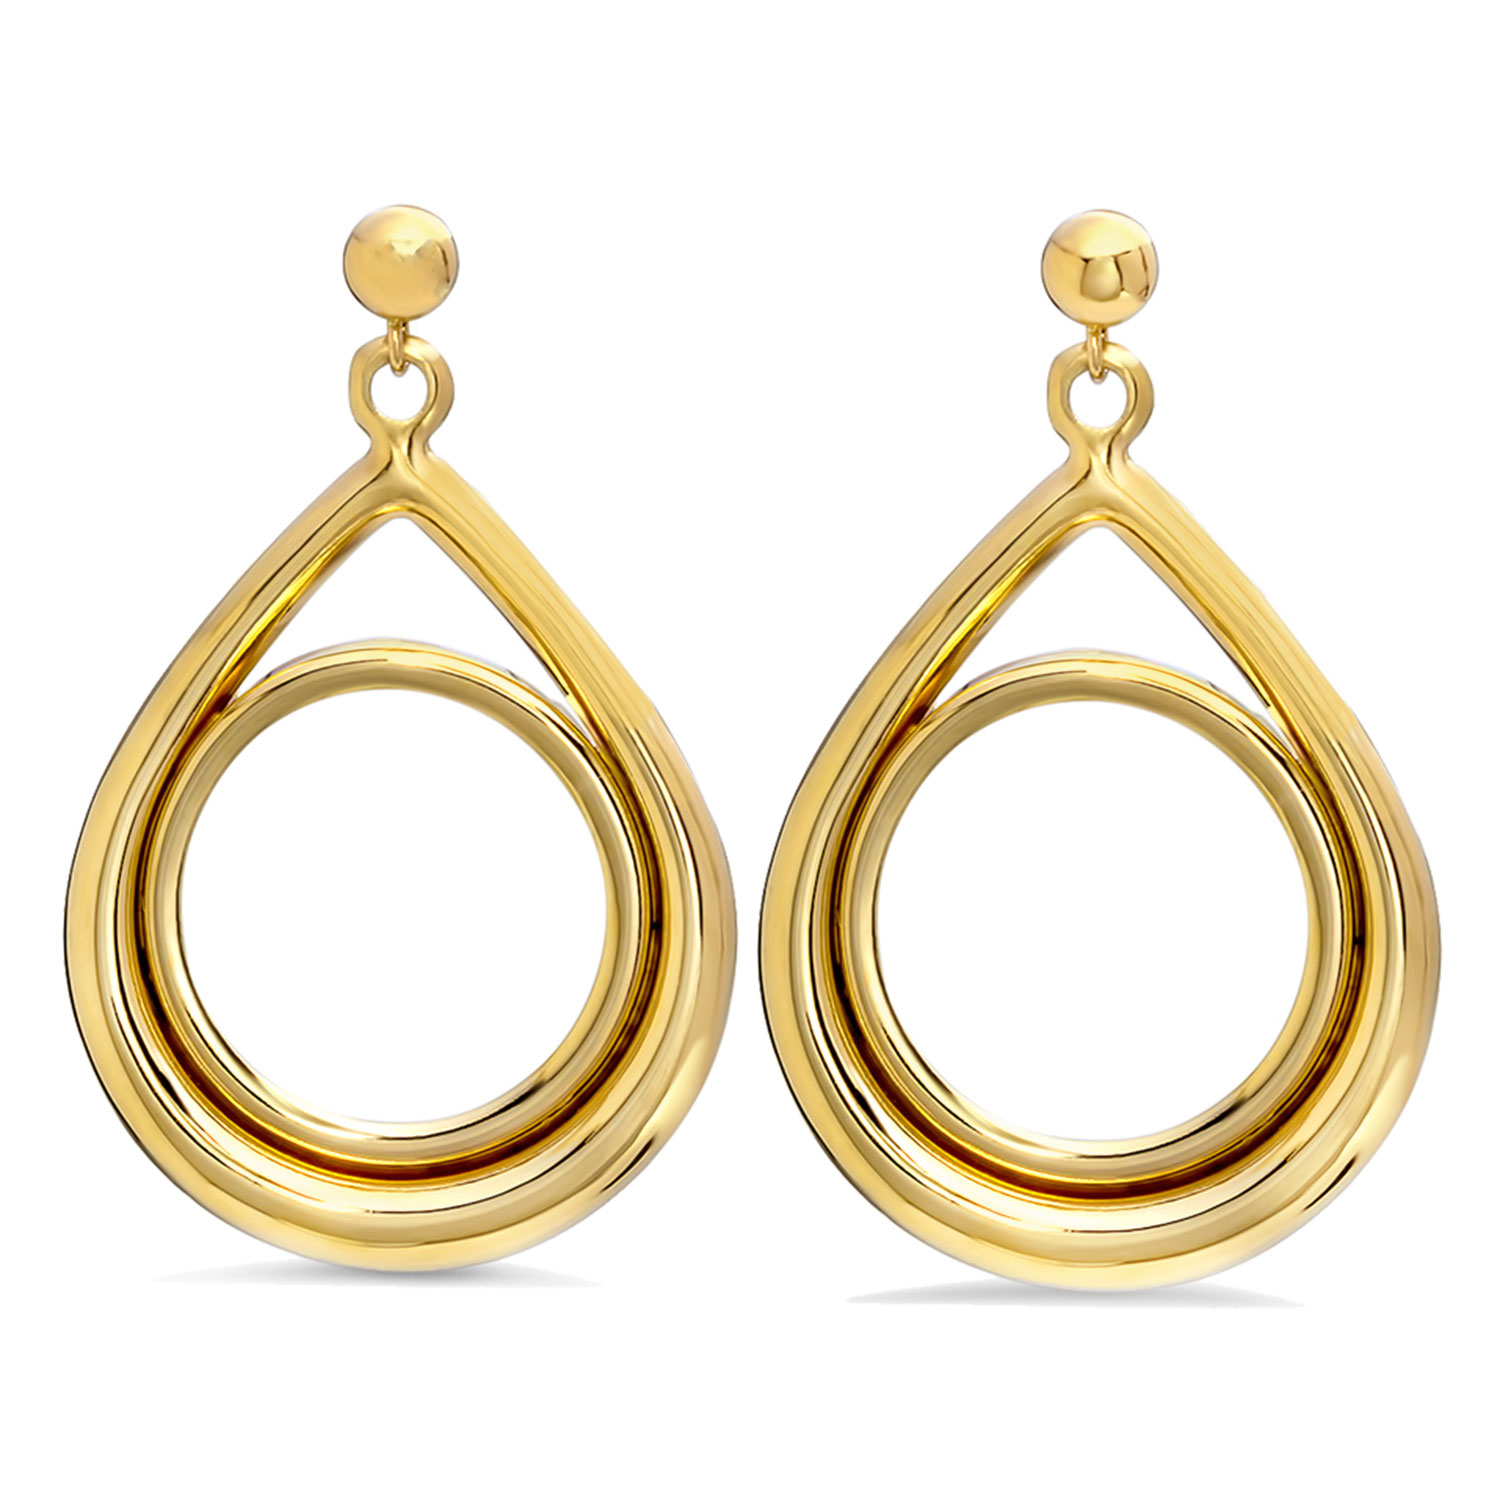 14k Gold Prong Tear Drop Dangle Coin Earrings - 16.5 mm